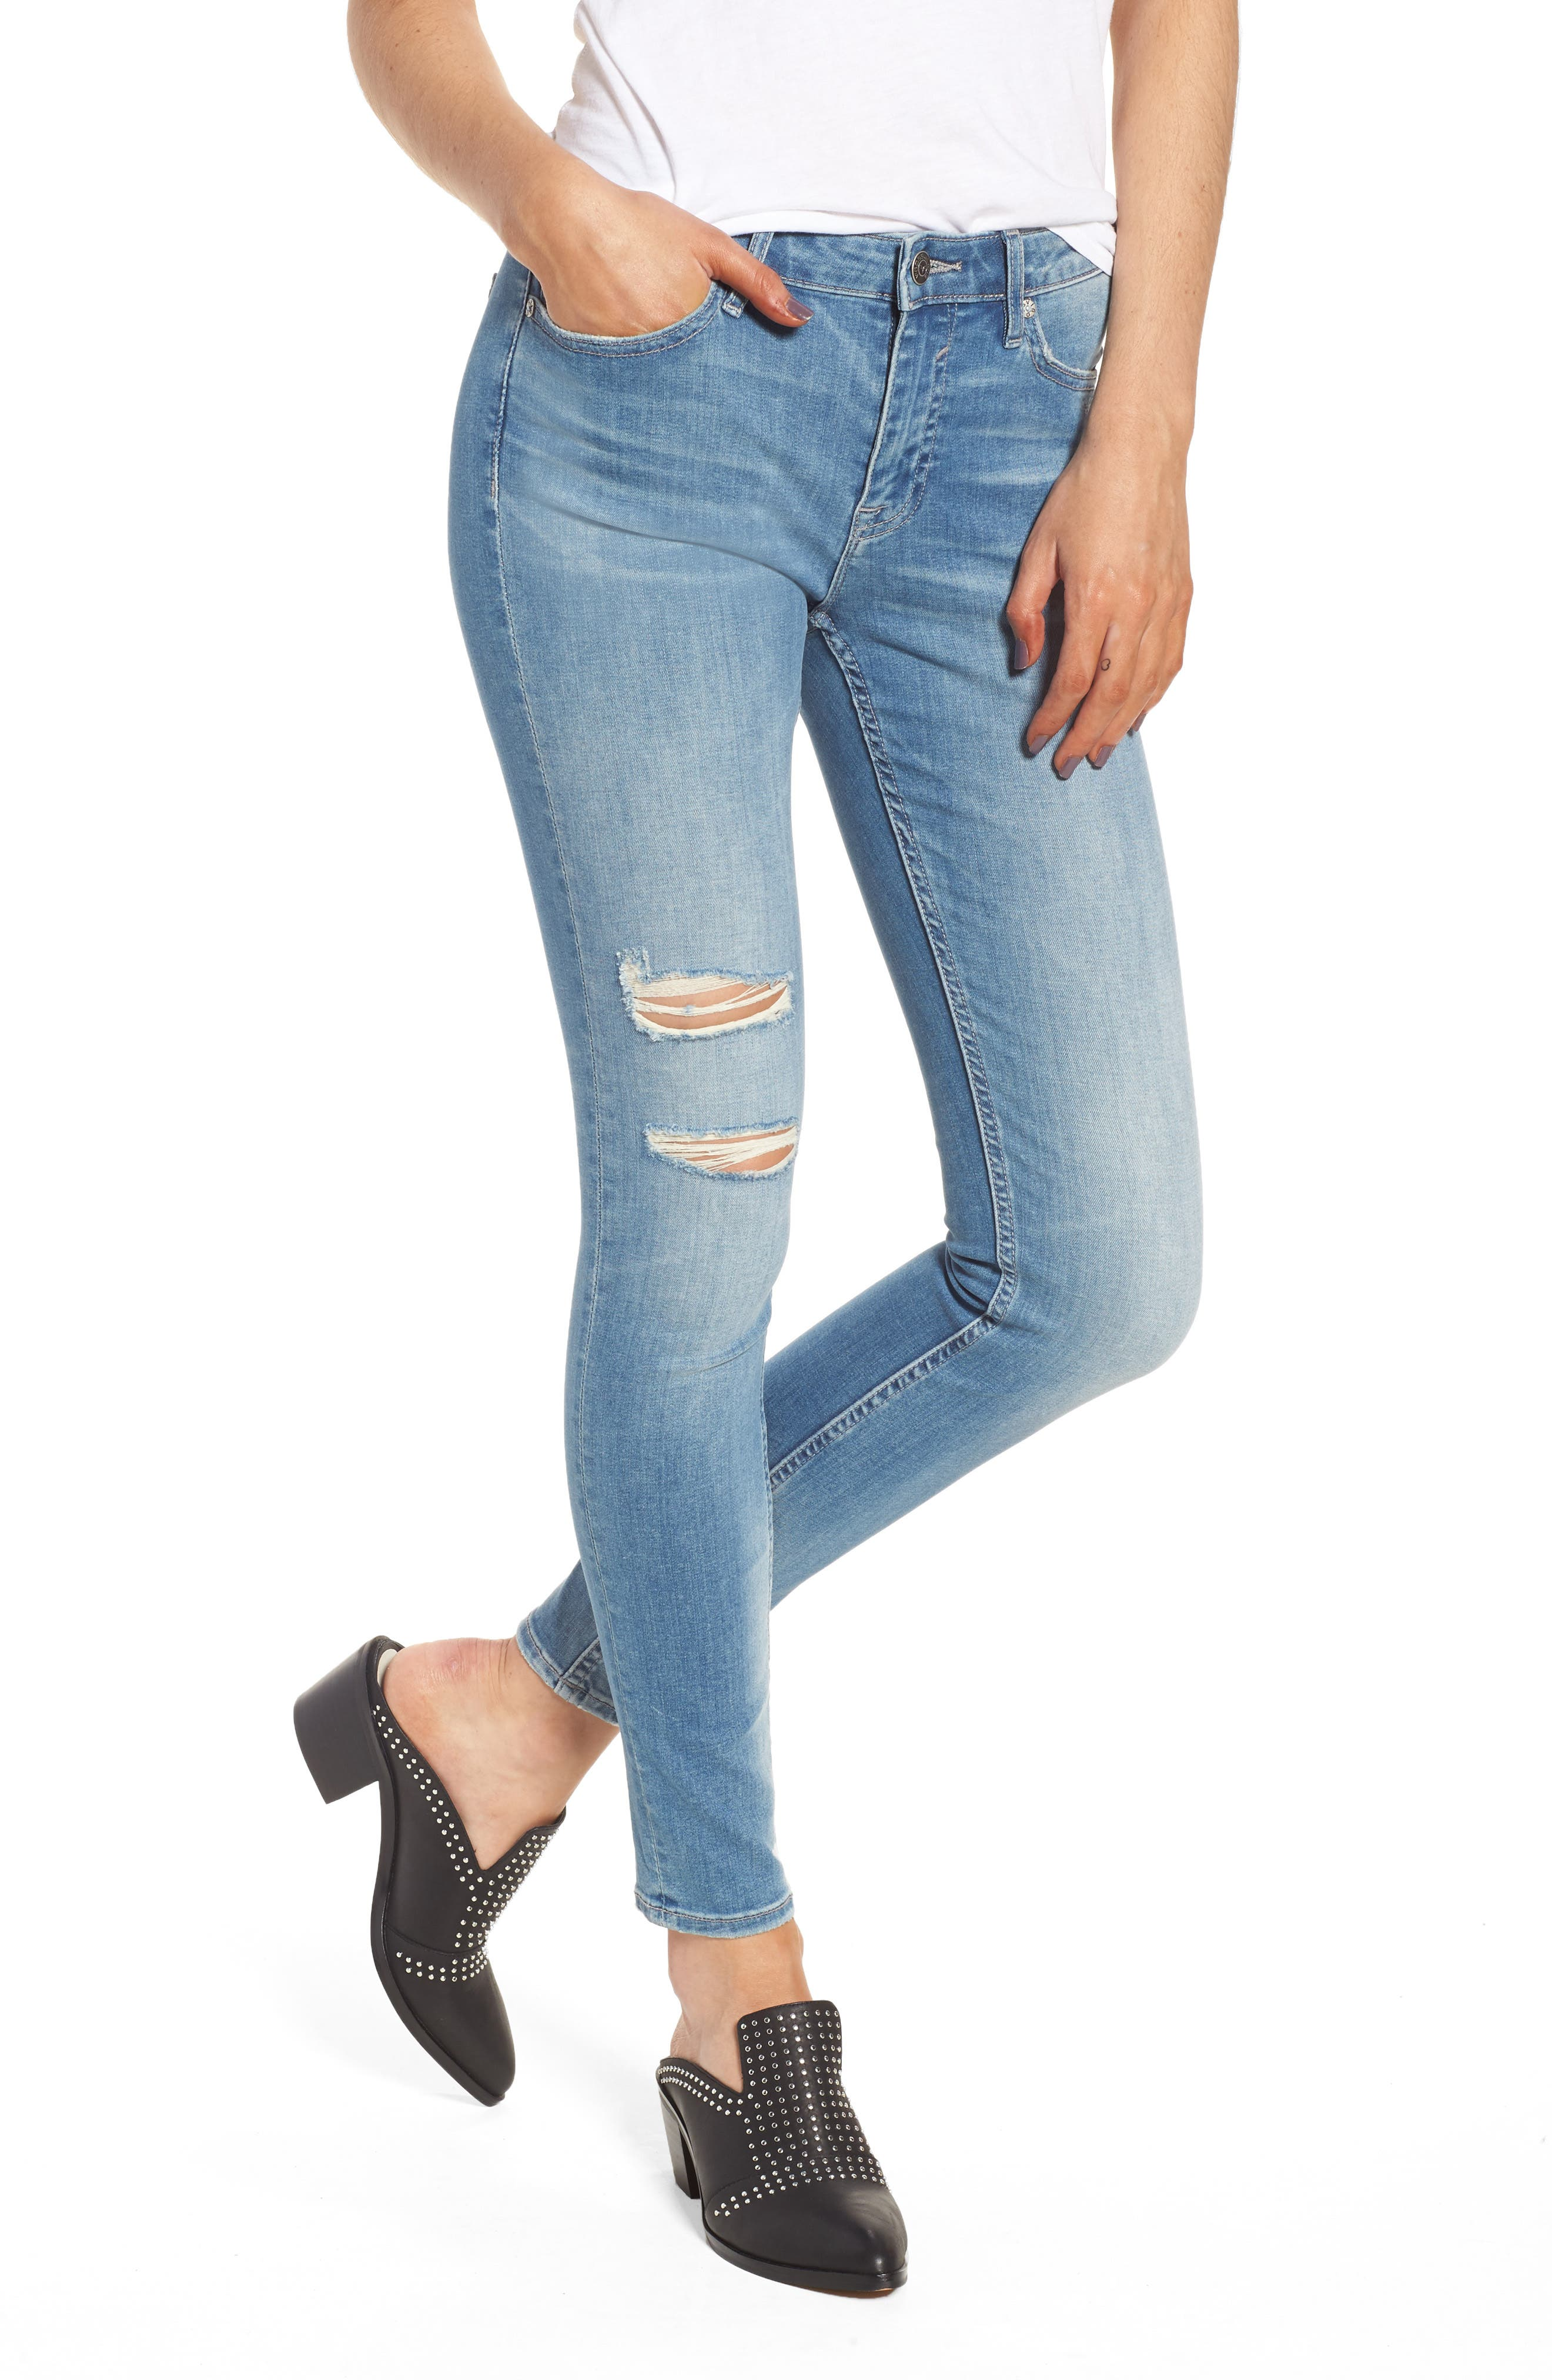 Marley Ripped Skinny Jeans,                         Main,                         color,